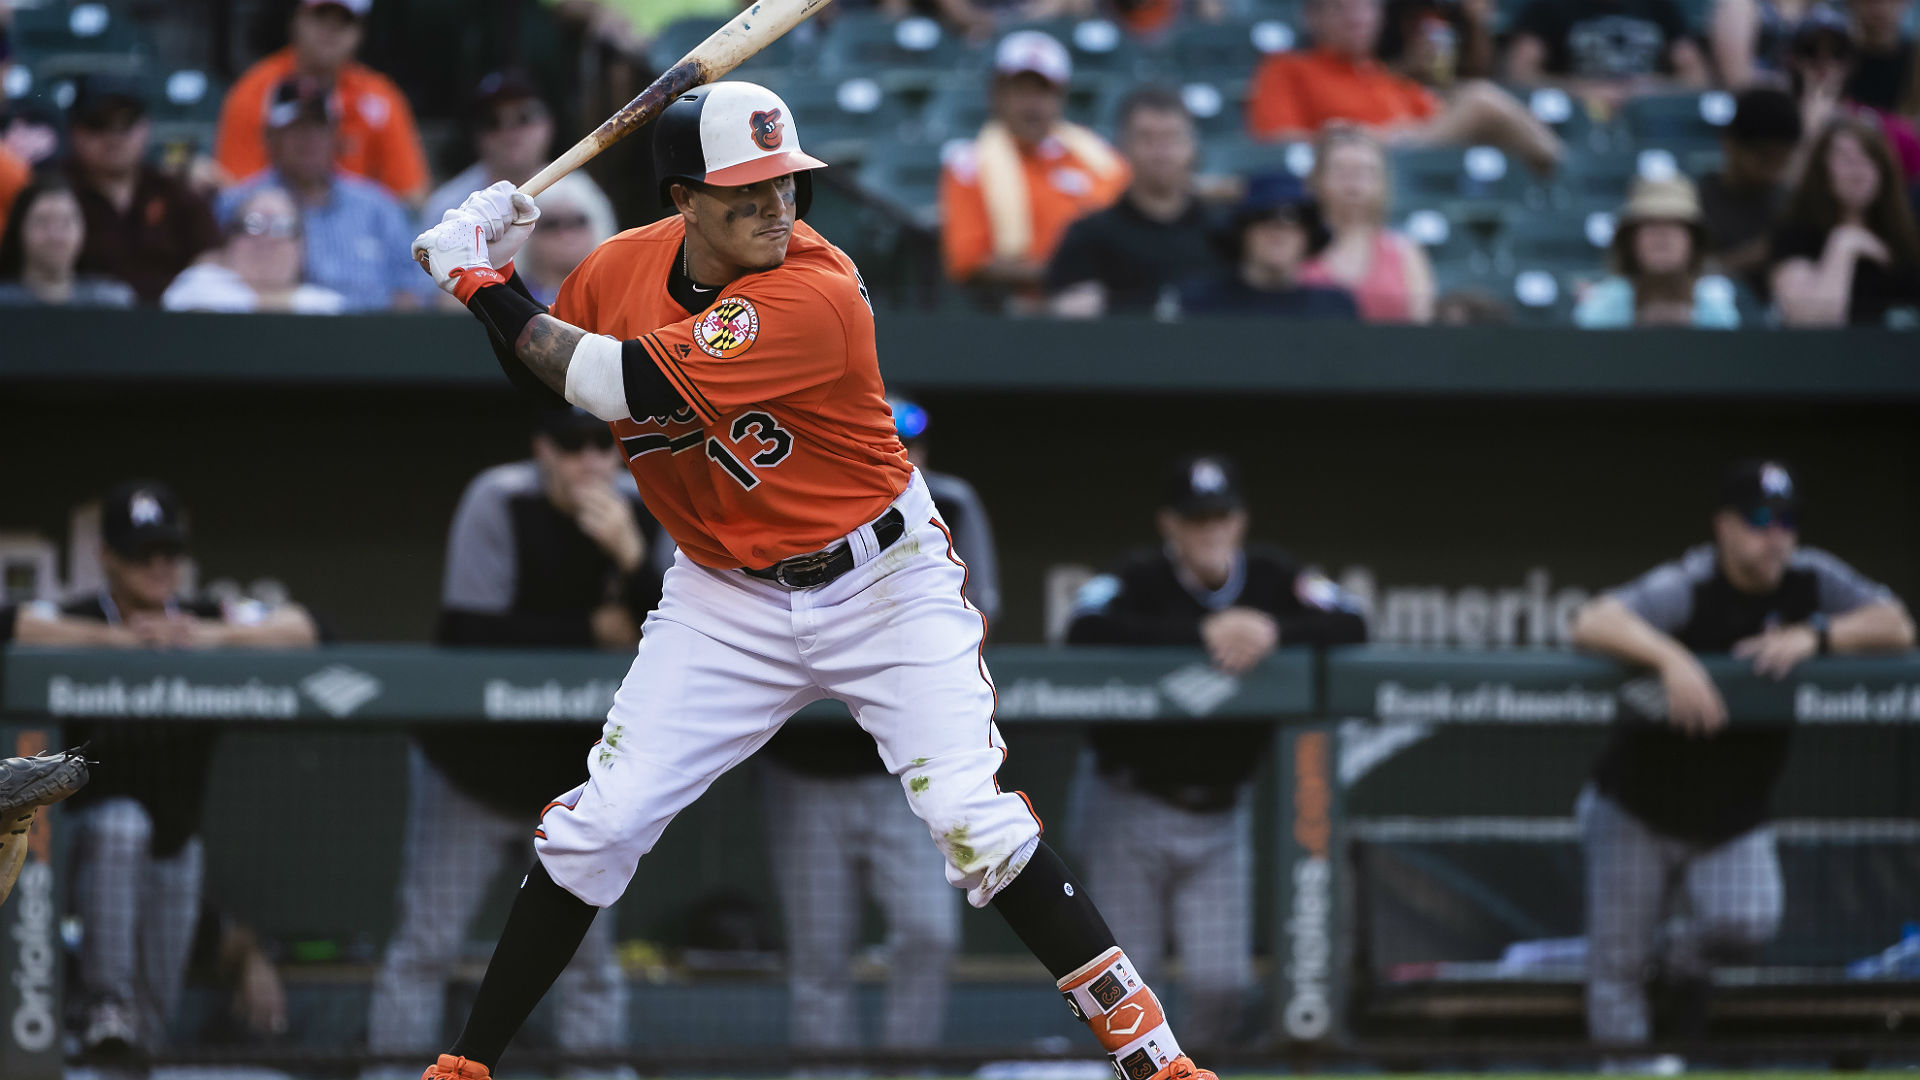 Orioles have received offers from 7 teams for Machado